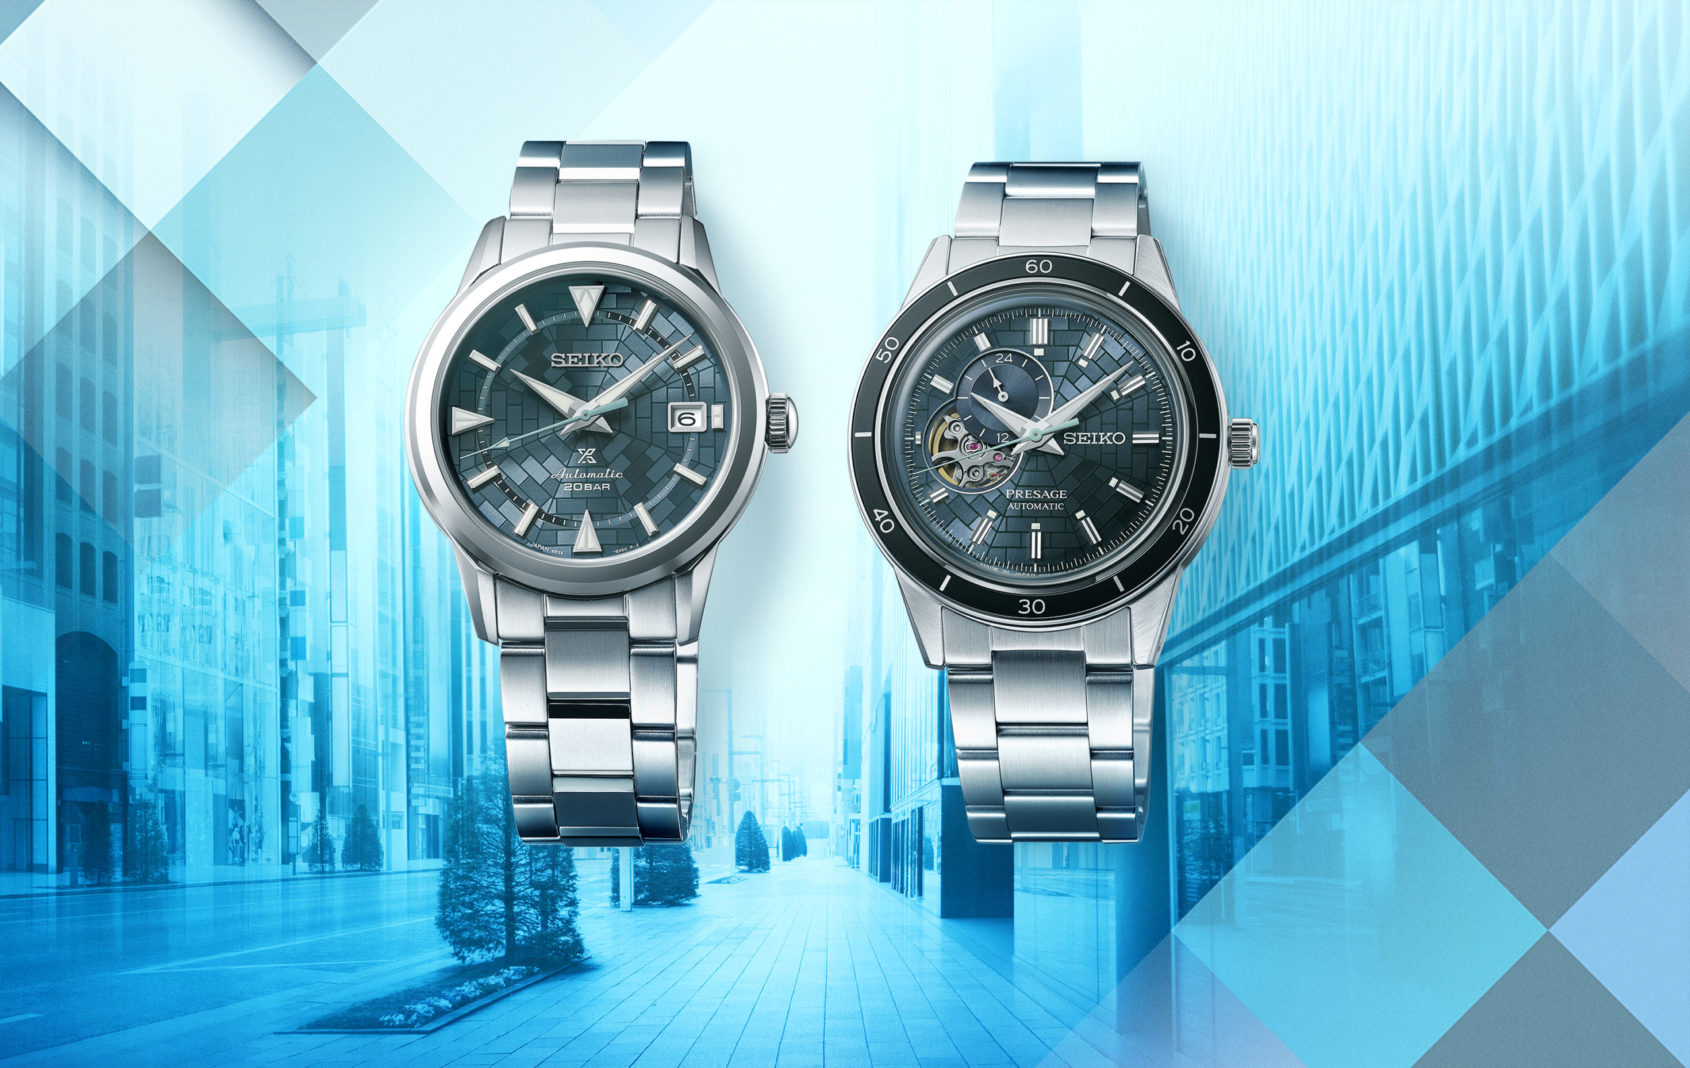 INTRODUCING: The Seiko SPB259 & SSA445 140th Anniversary Limited Editions